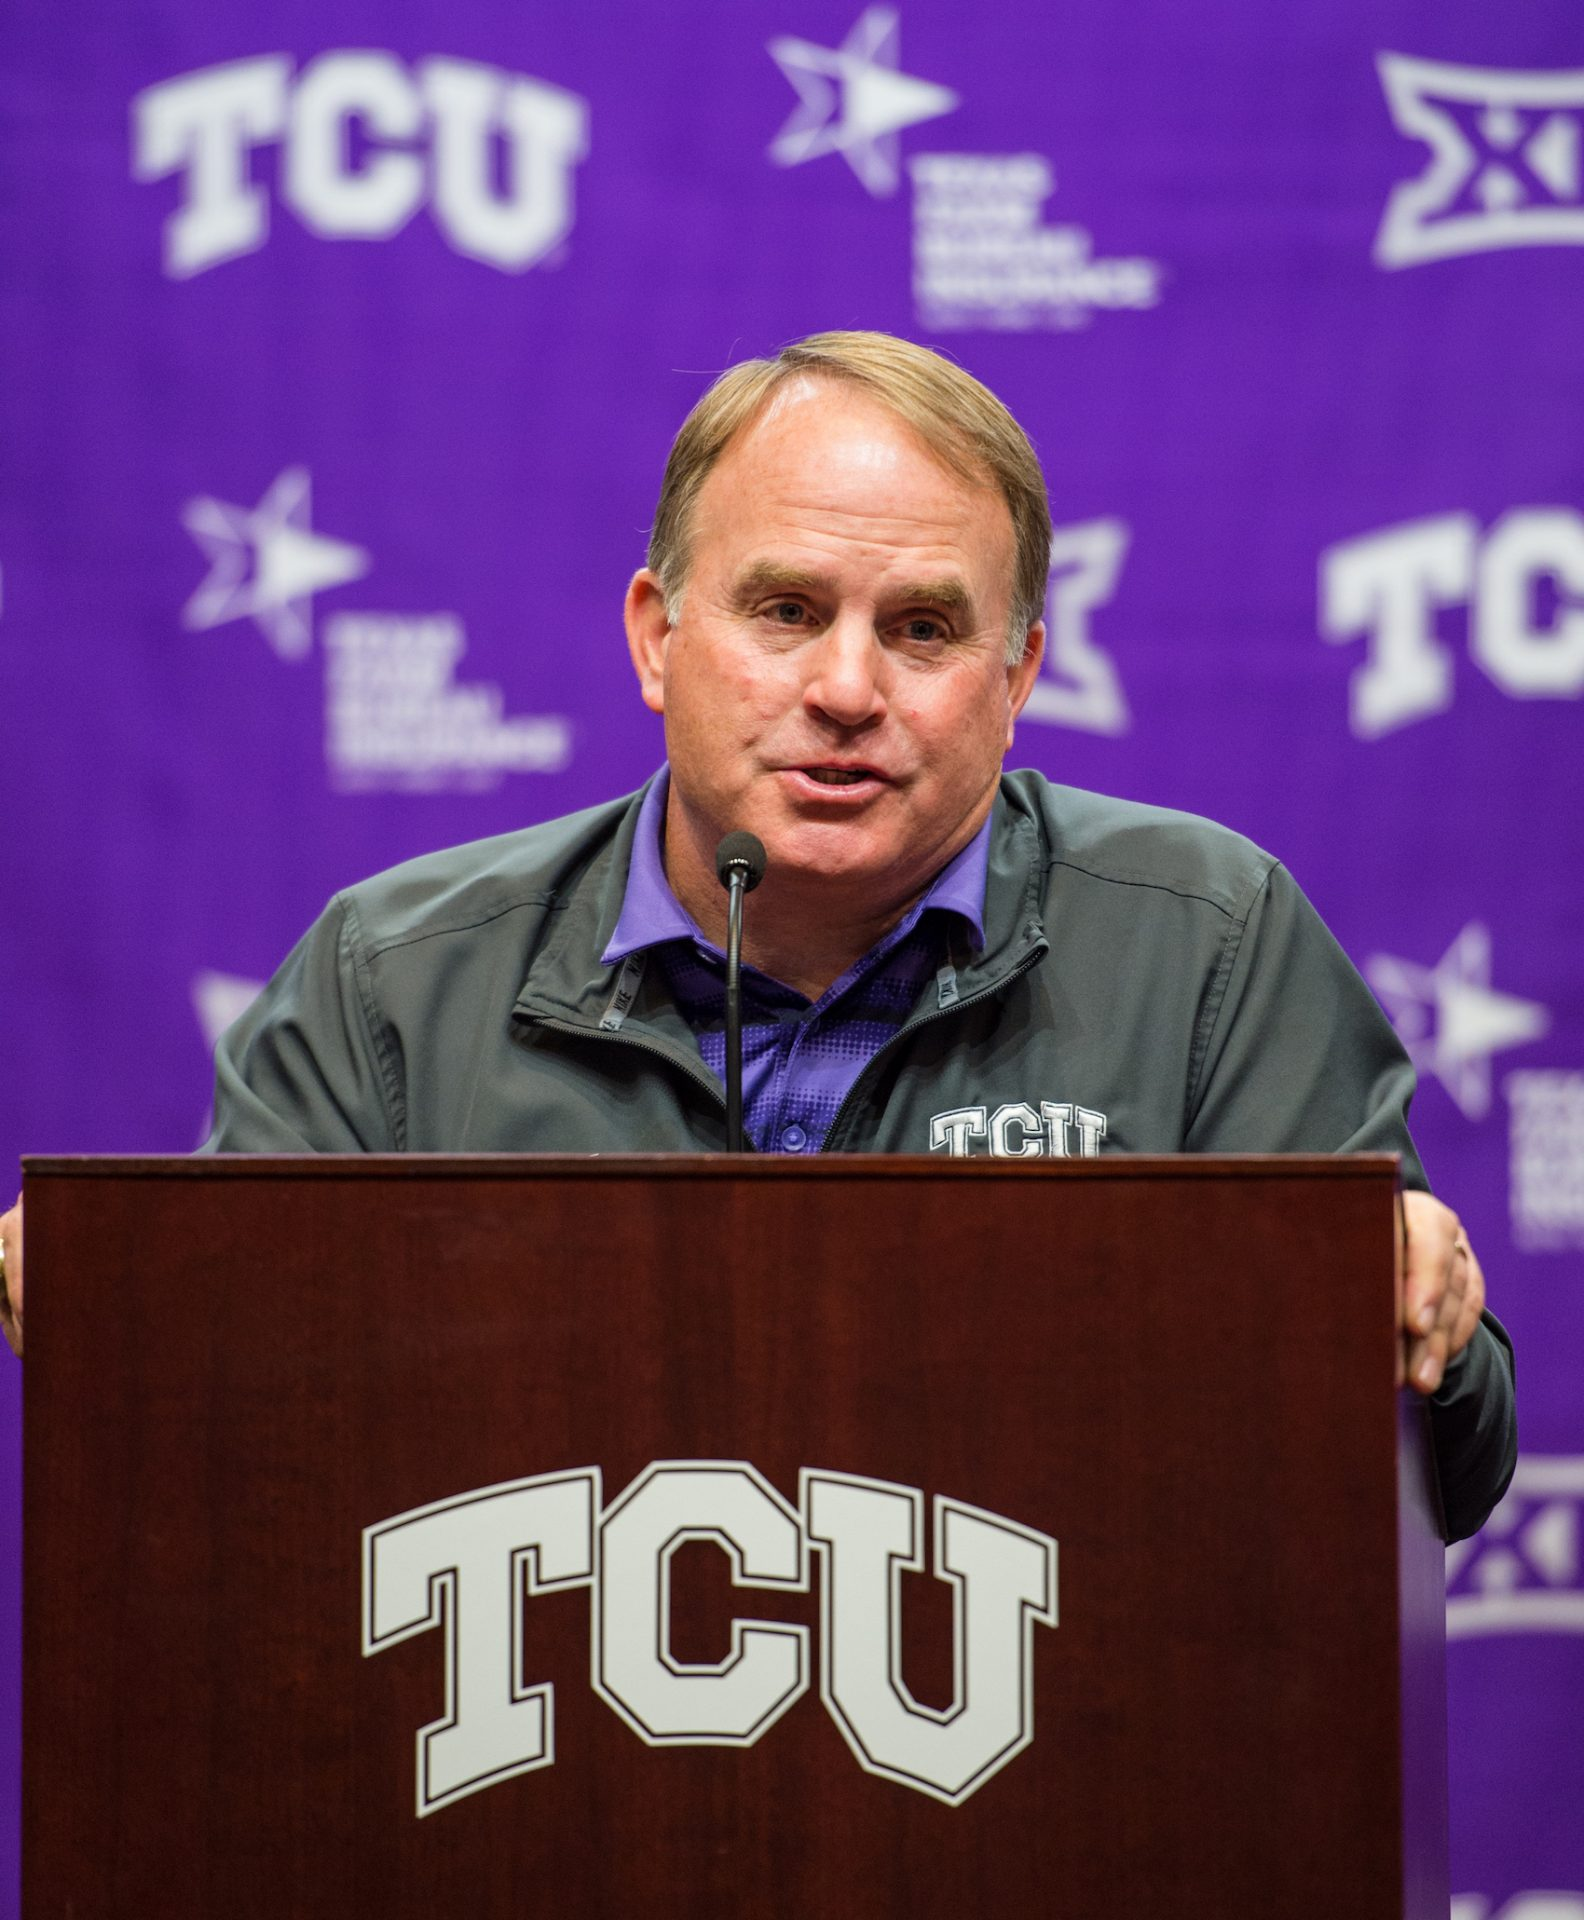 Hot Off The Presser: Is Oklahoma State Horned Frogs' First True Test?